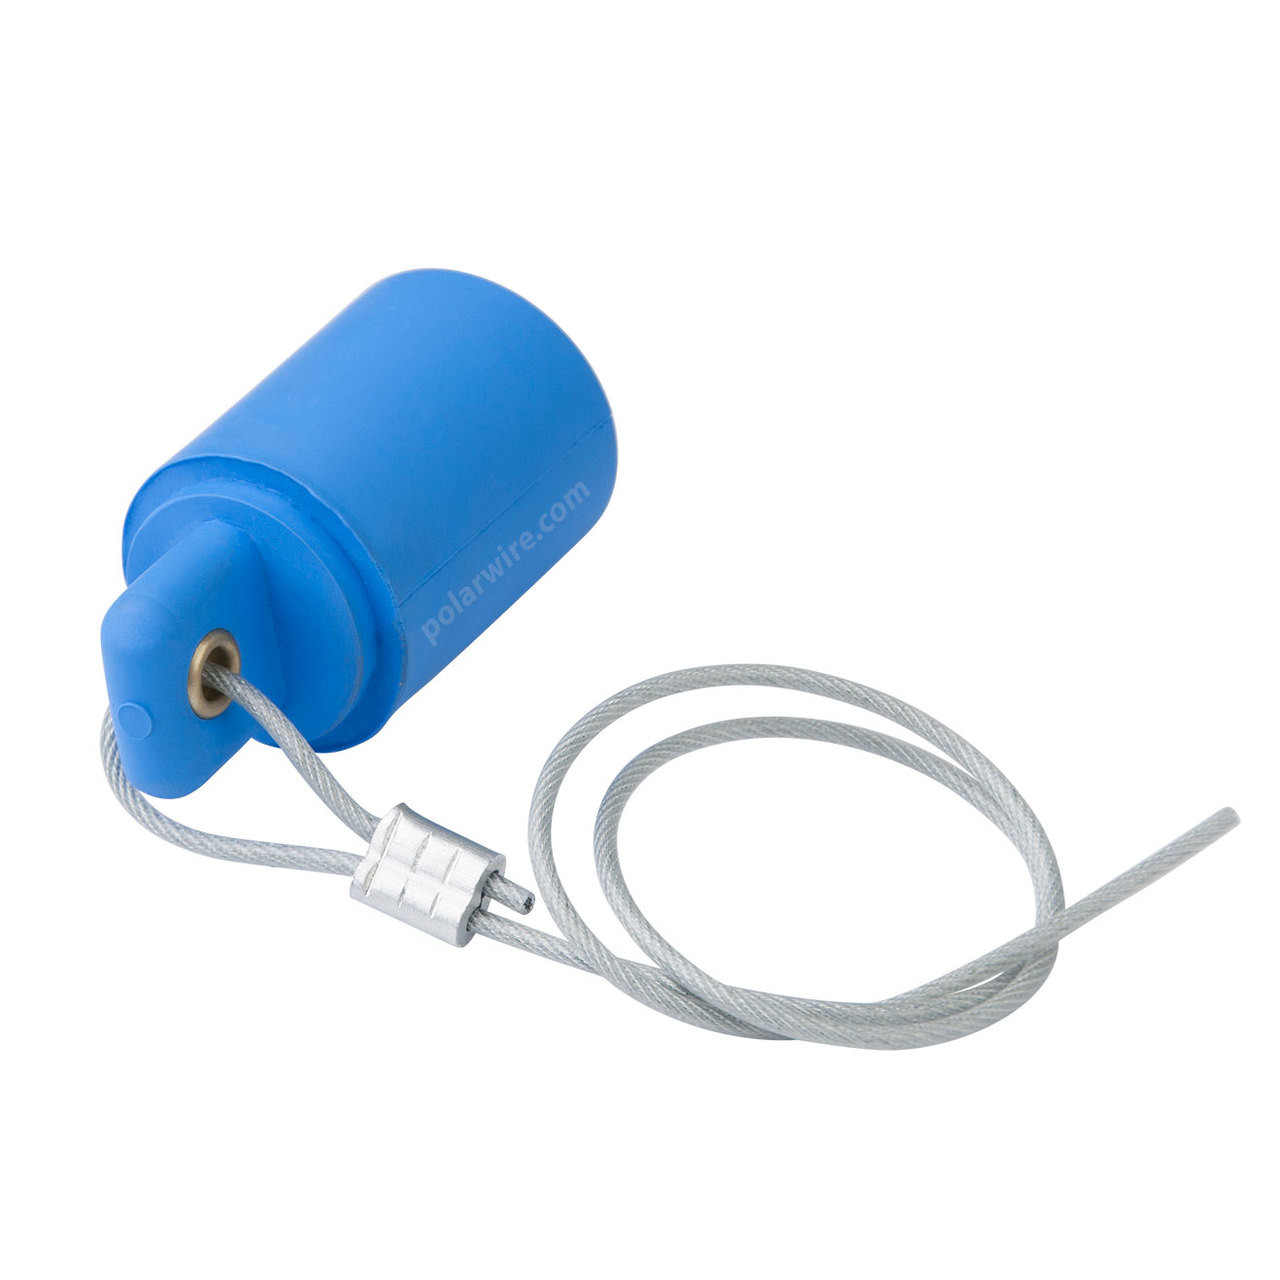 Marinco Cam Lock 400 amp blue female protective cover with 20 inch lanyard